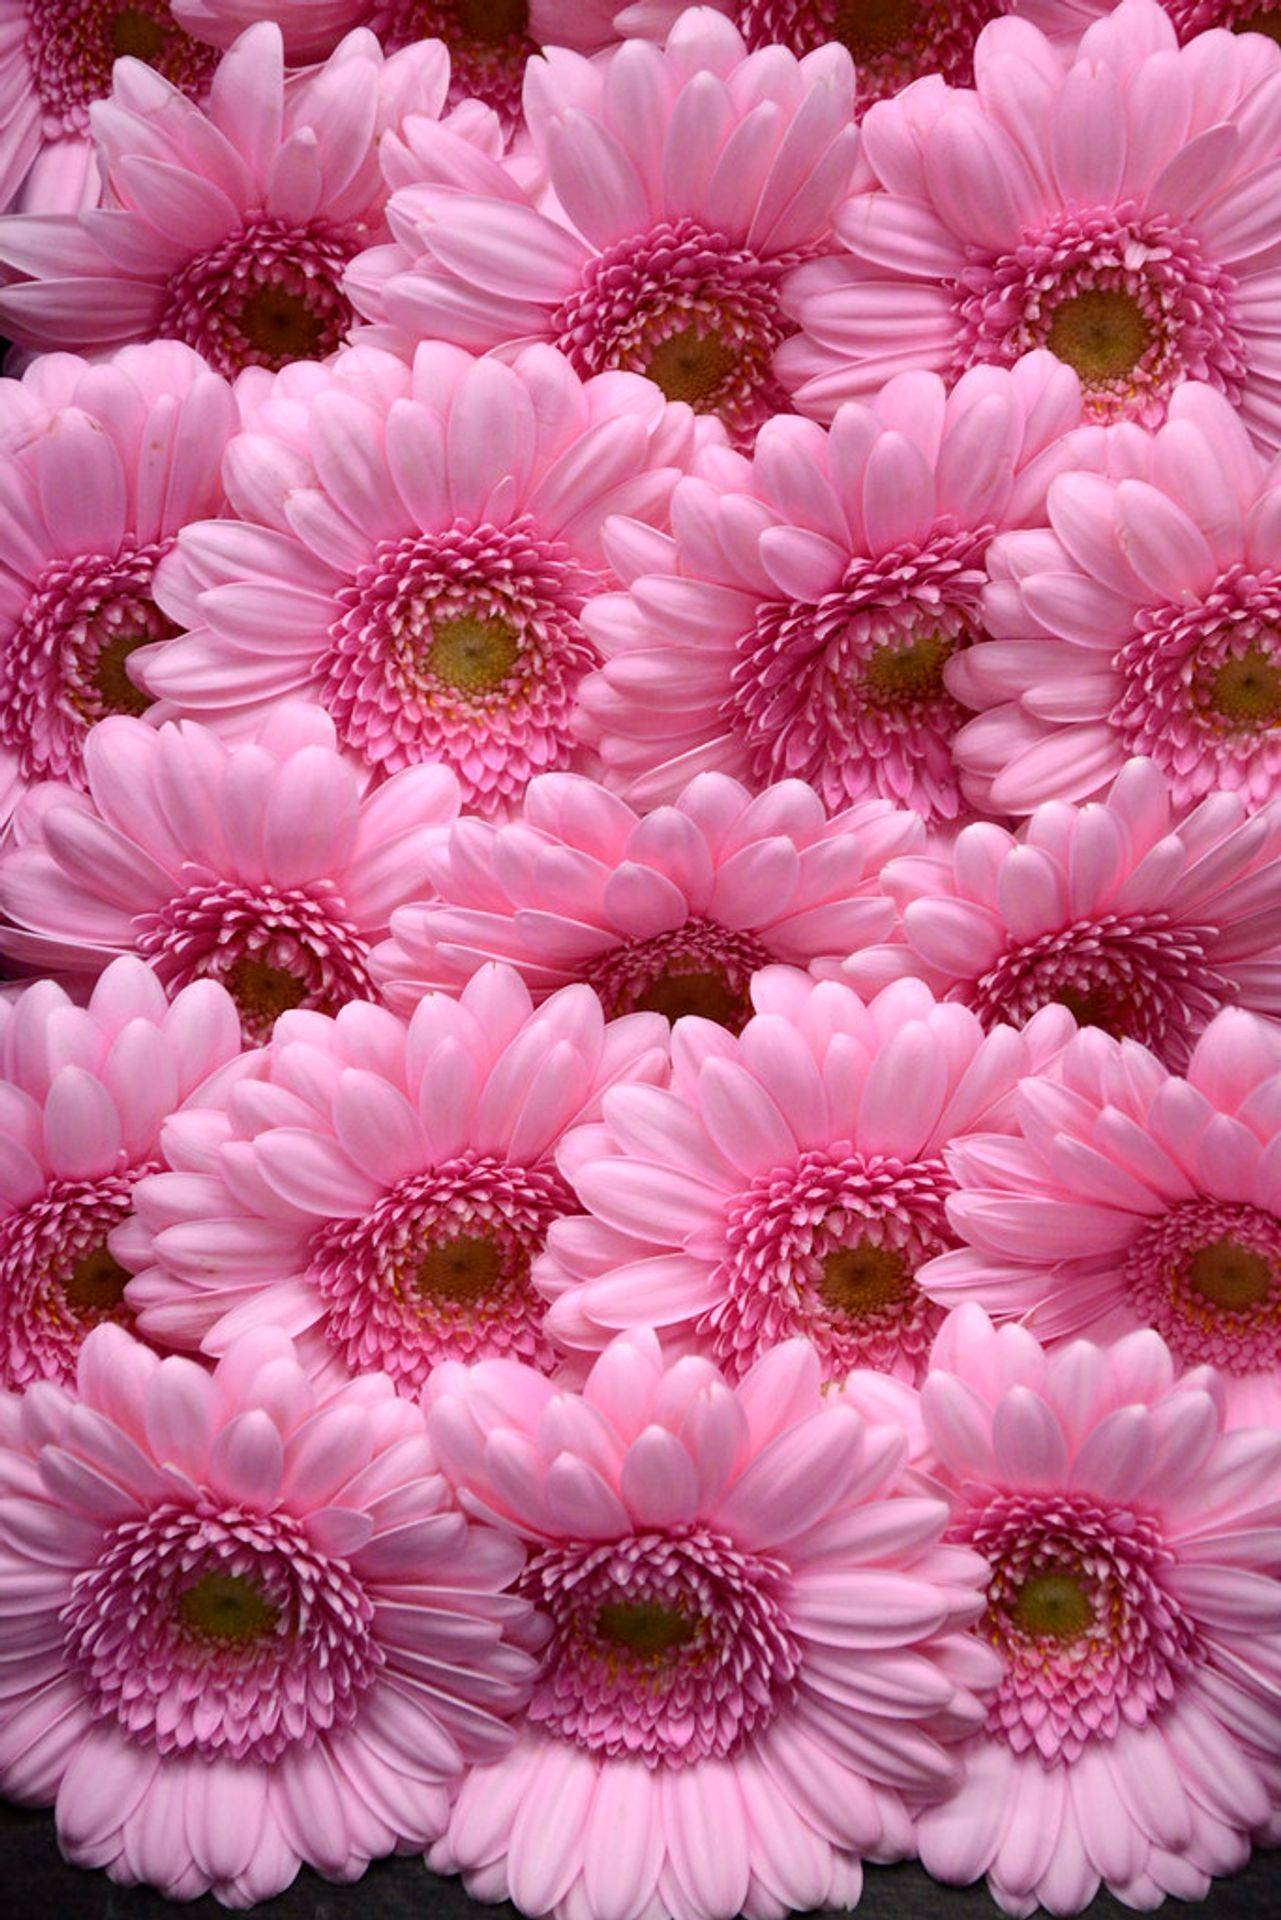 We have loads of gorgeous flowers that are pink in colour.